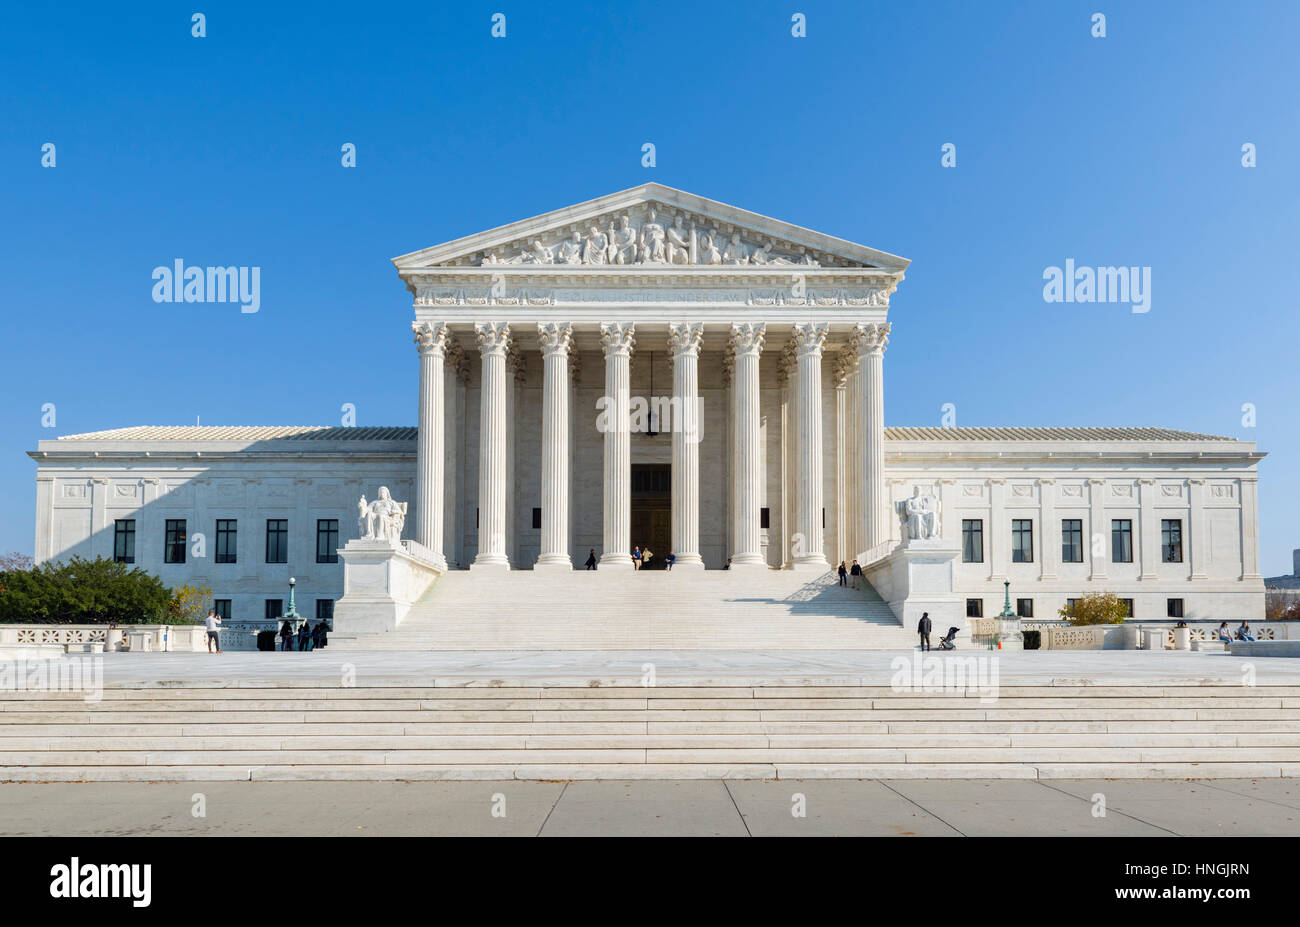 The United States Supreme Court Building, 1st Street Northeast, Washington DC, USA - Stock Image